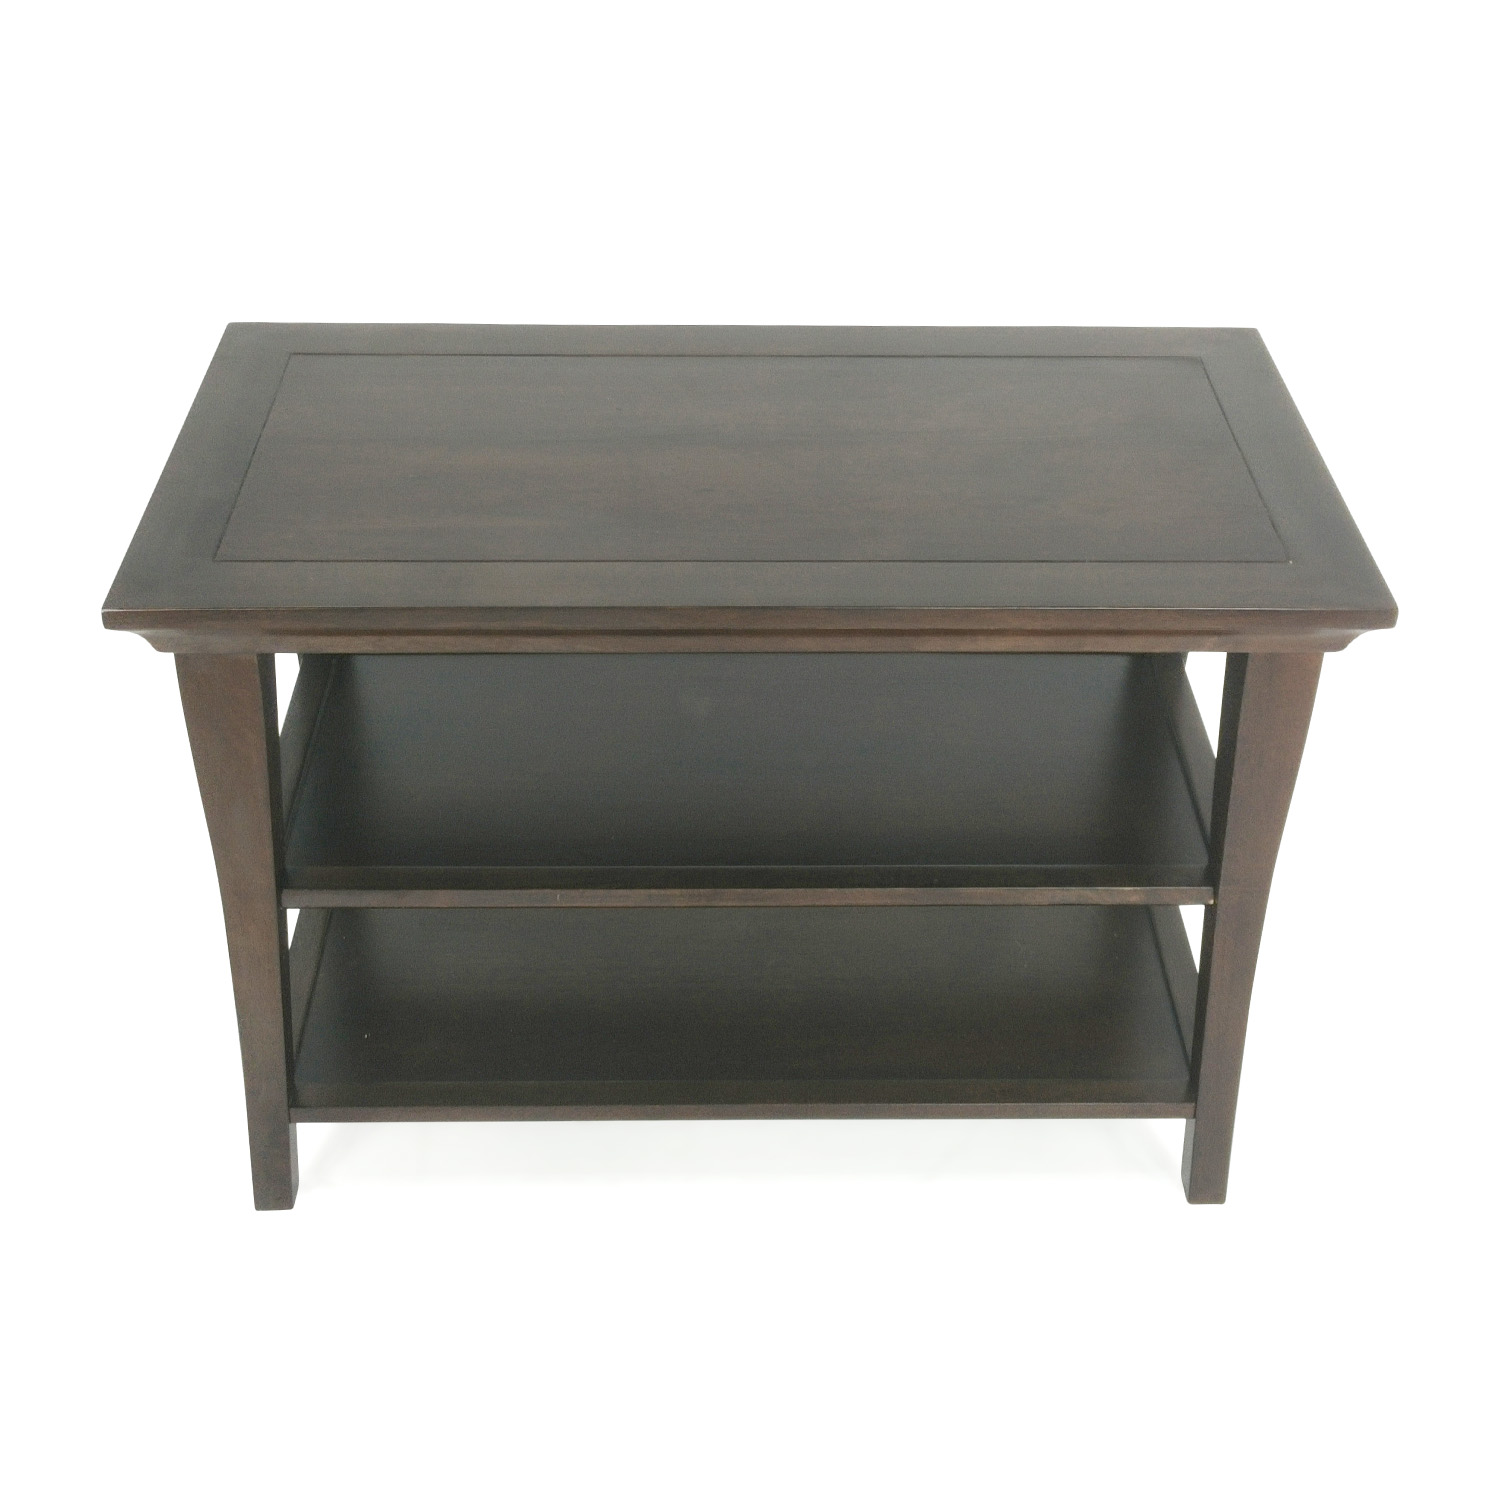 Pottery Barn Pottery Barn Table with Shelves